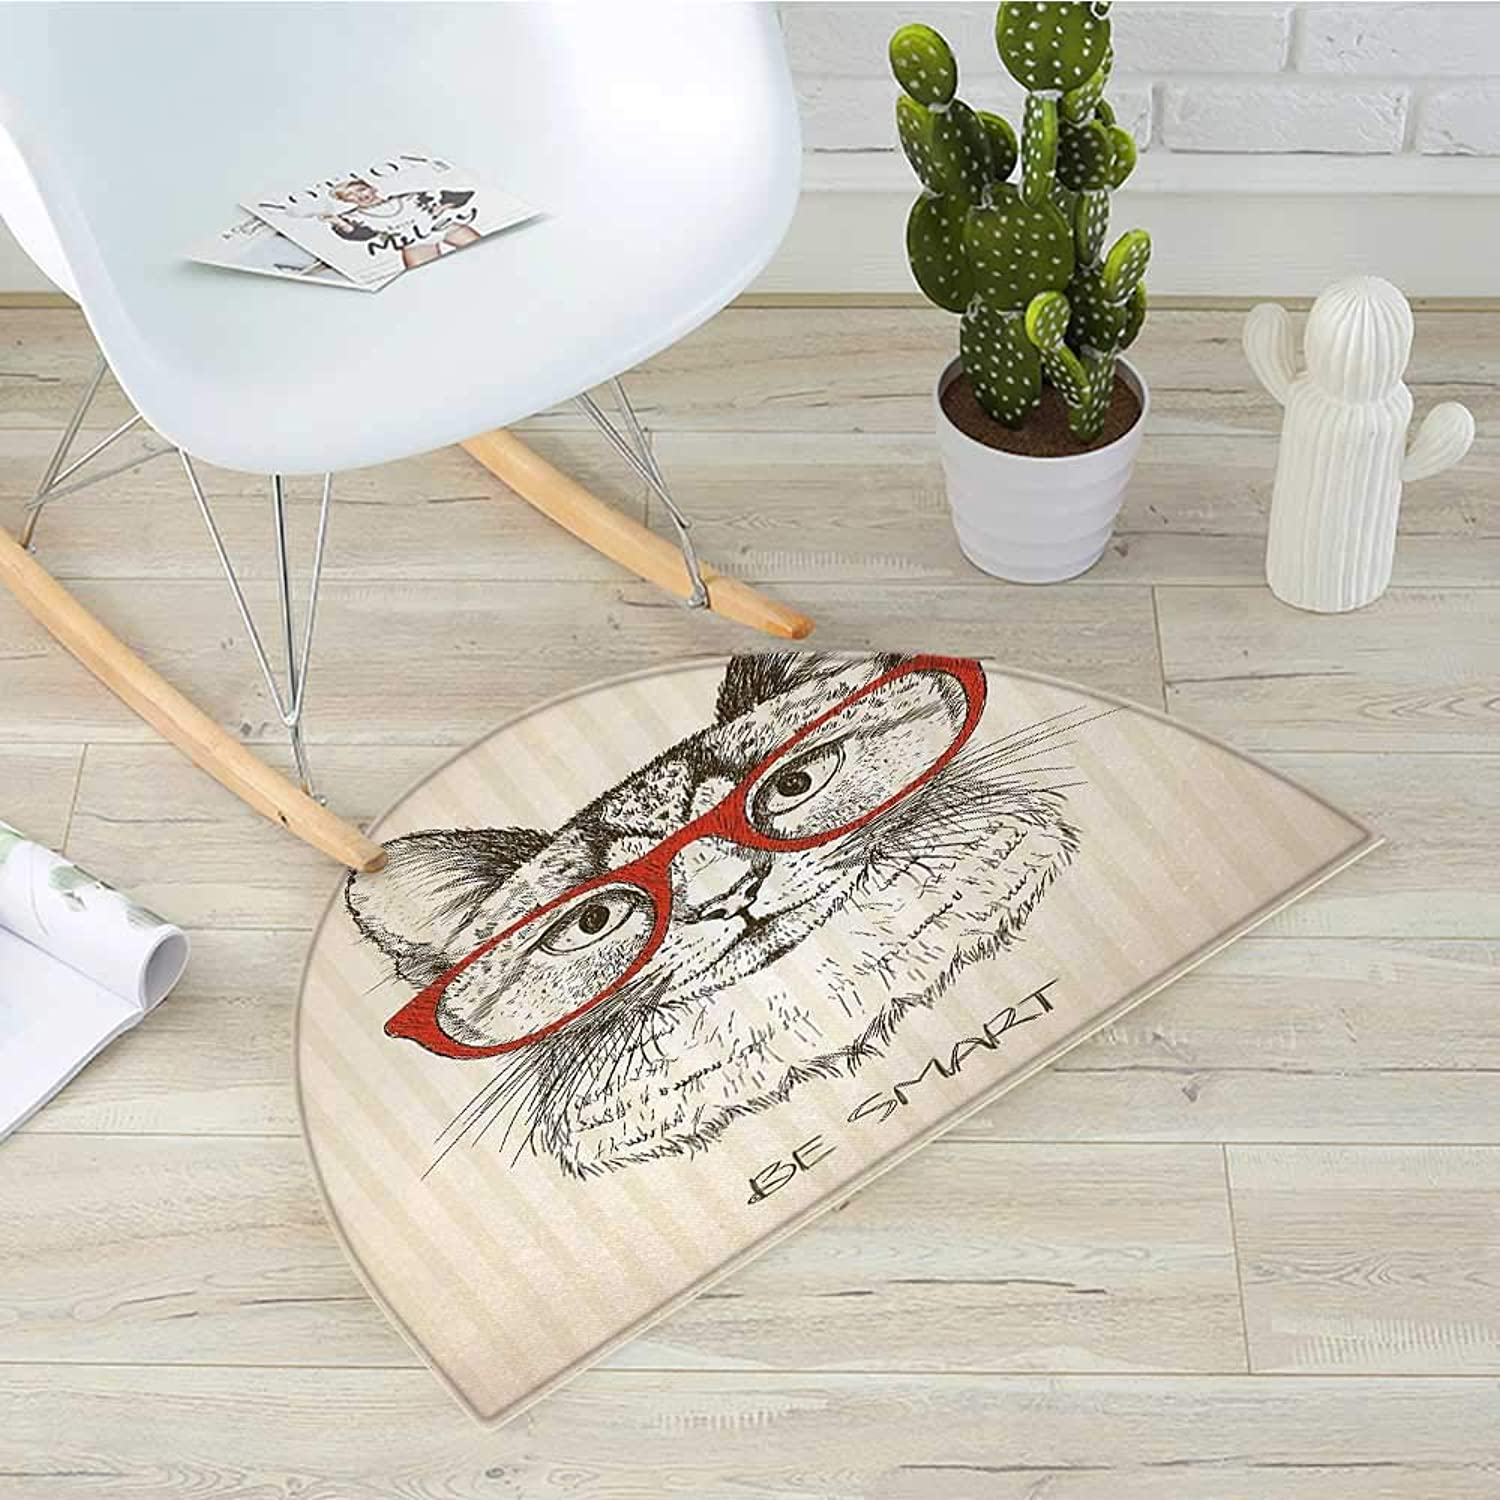 Hipster Semicircle Doormat Animal Kitten Cat with Vintage Retro Quote Glasses Sketchy Artwork Halfmoon doormats H 31.5  xD 47.2  Ivory Olive Green Vermilion